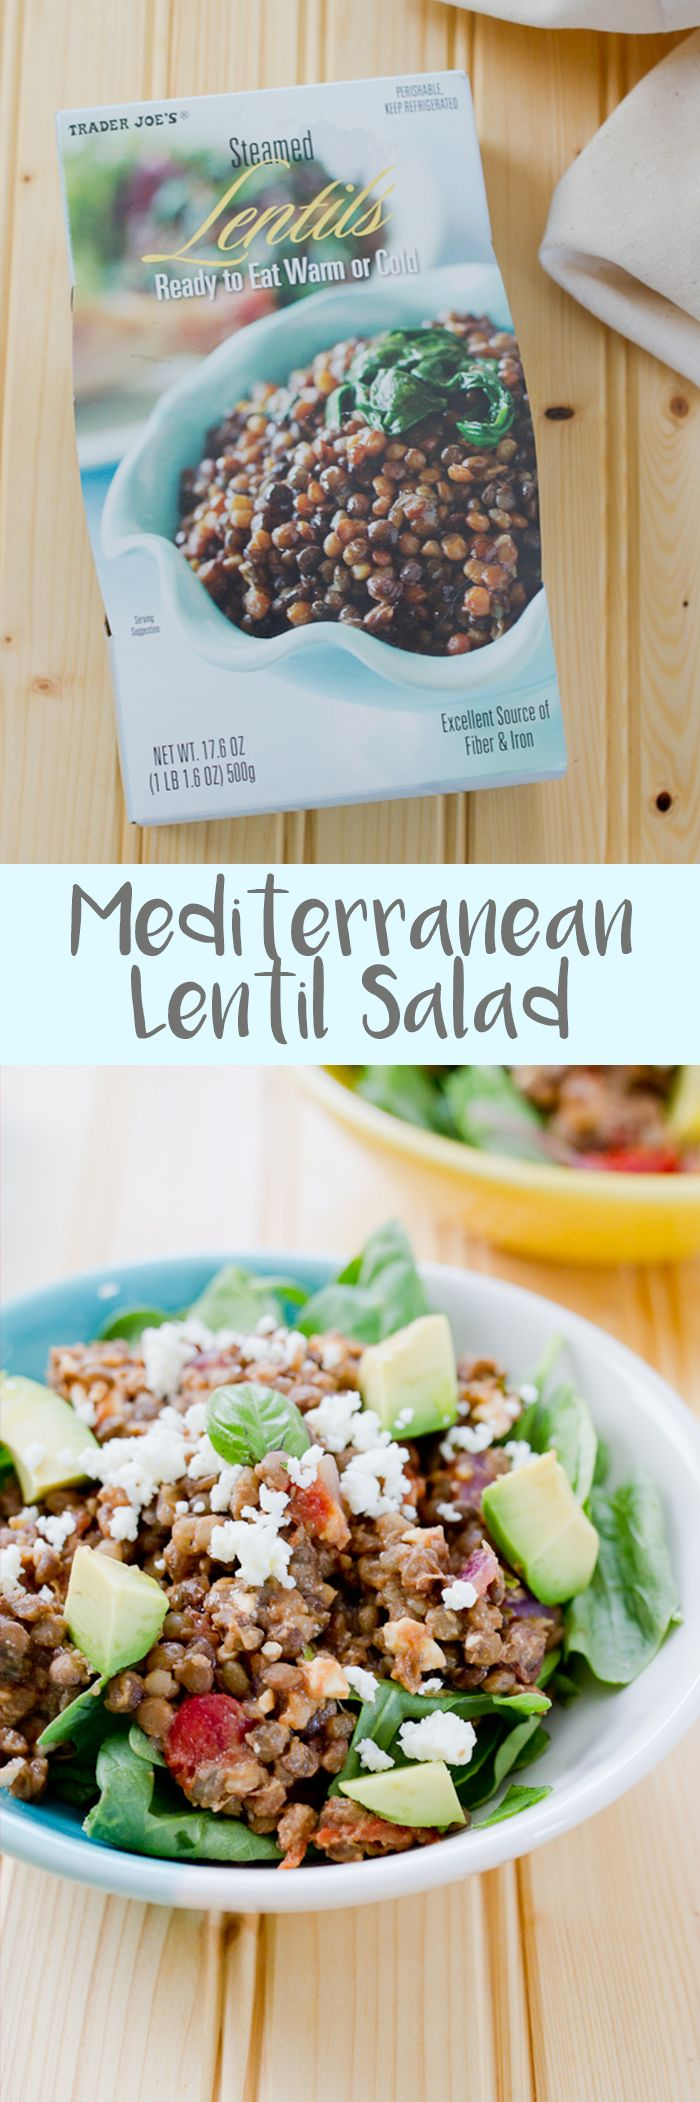 This Mediterranean lentil salad marries sautéed tomatoes, fresh basil and feta with steamed lentils for a hearty, flavorful vegetarian meal that takes less than 20 minutes to prepare!